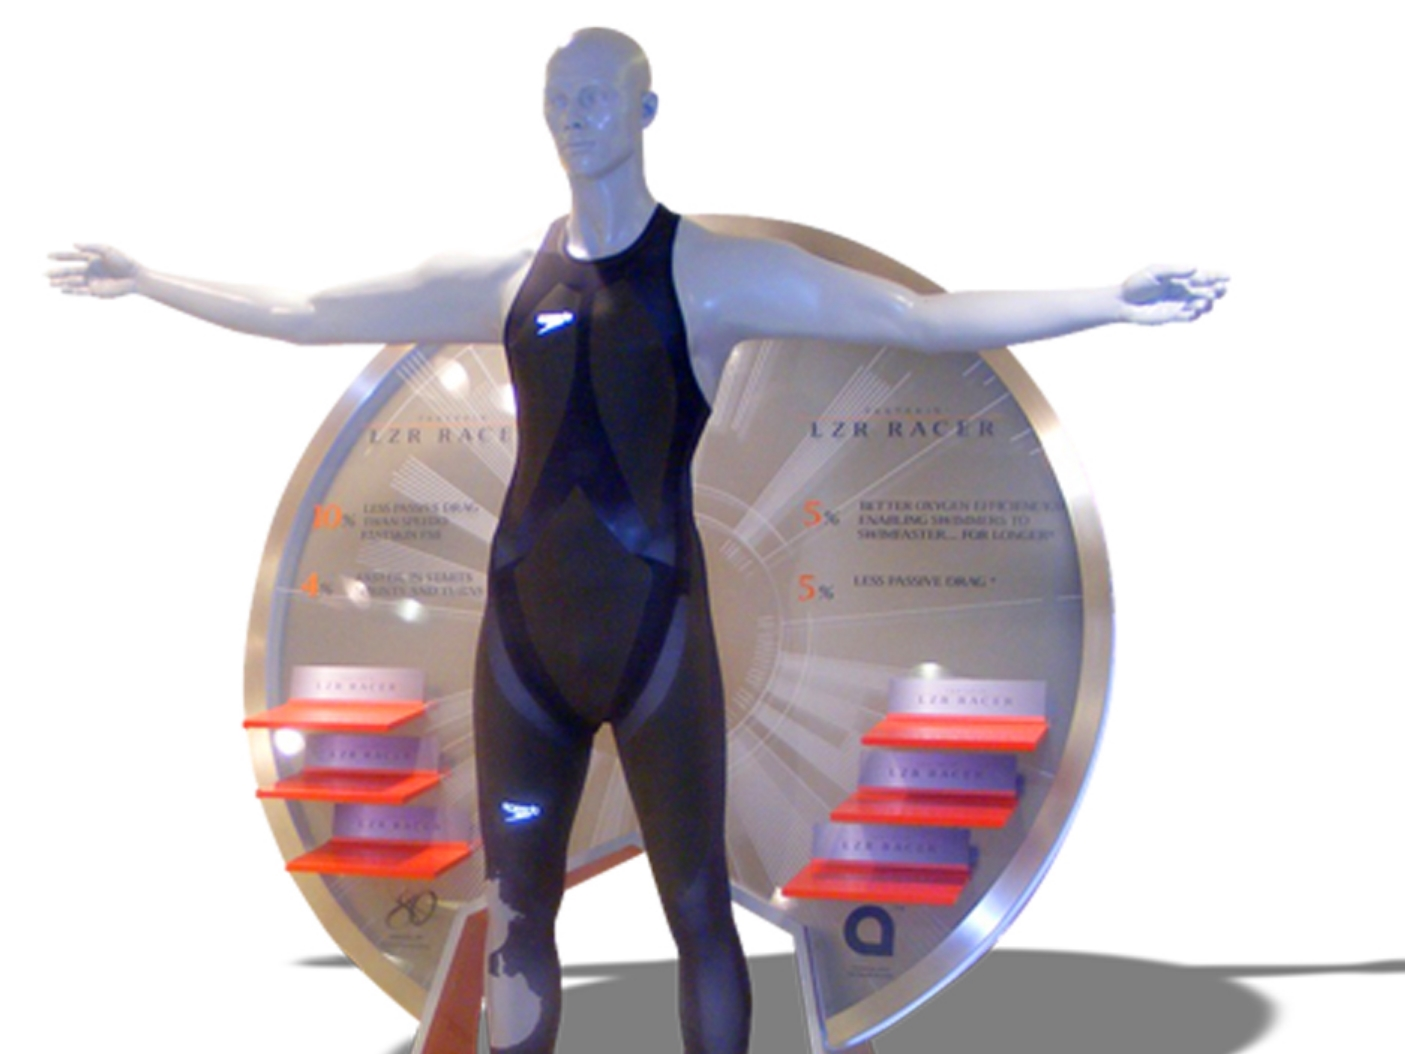 Speedo-Olympic-Suit-Visual-Merchandising-Specialist-Fixture-1.jpg